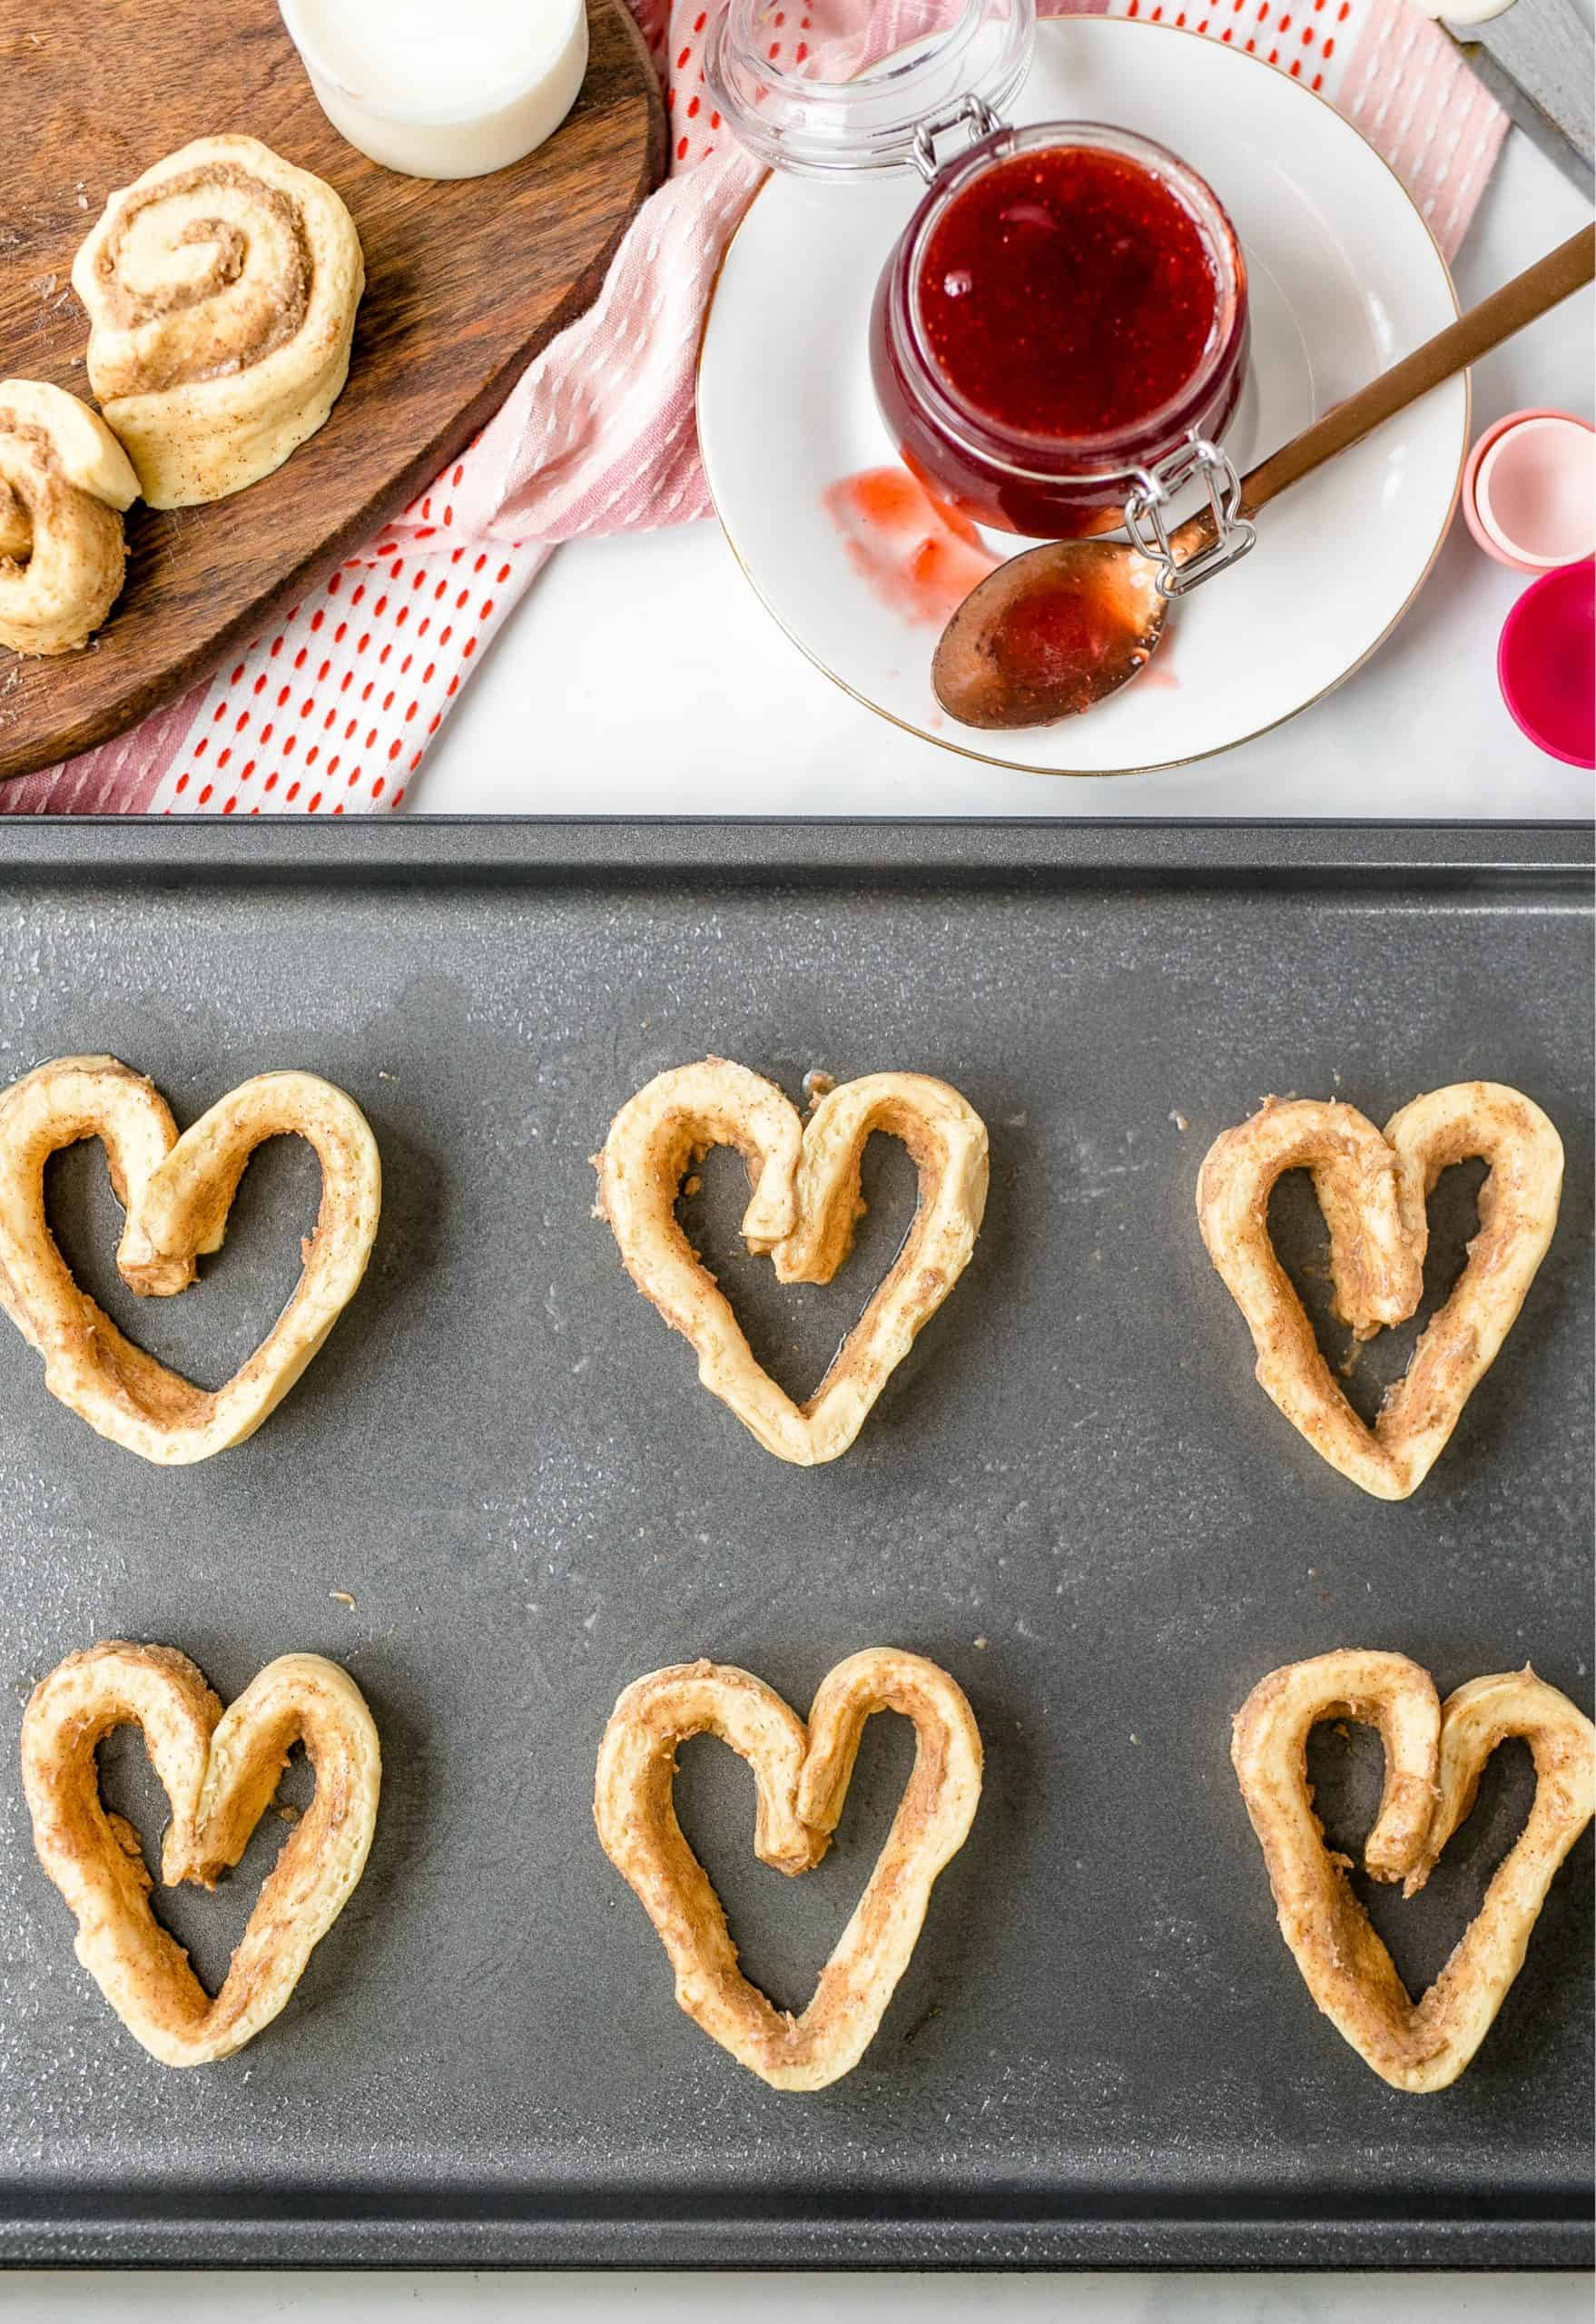 cinnamon roll dough shown shaped into hearts and on a cookie sheet.